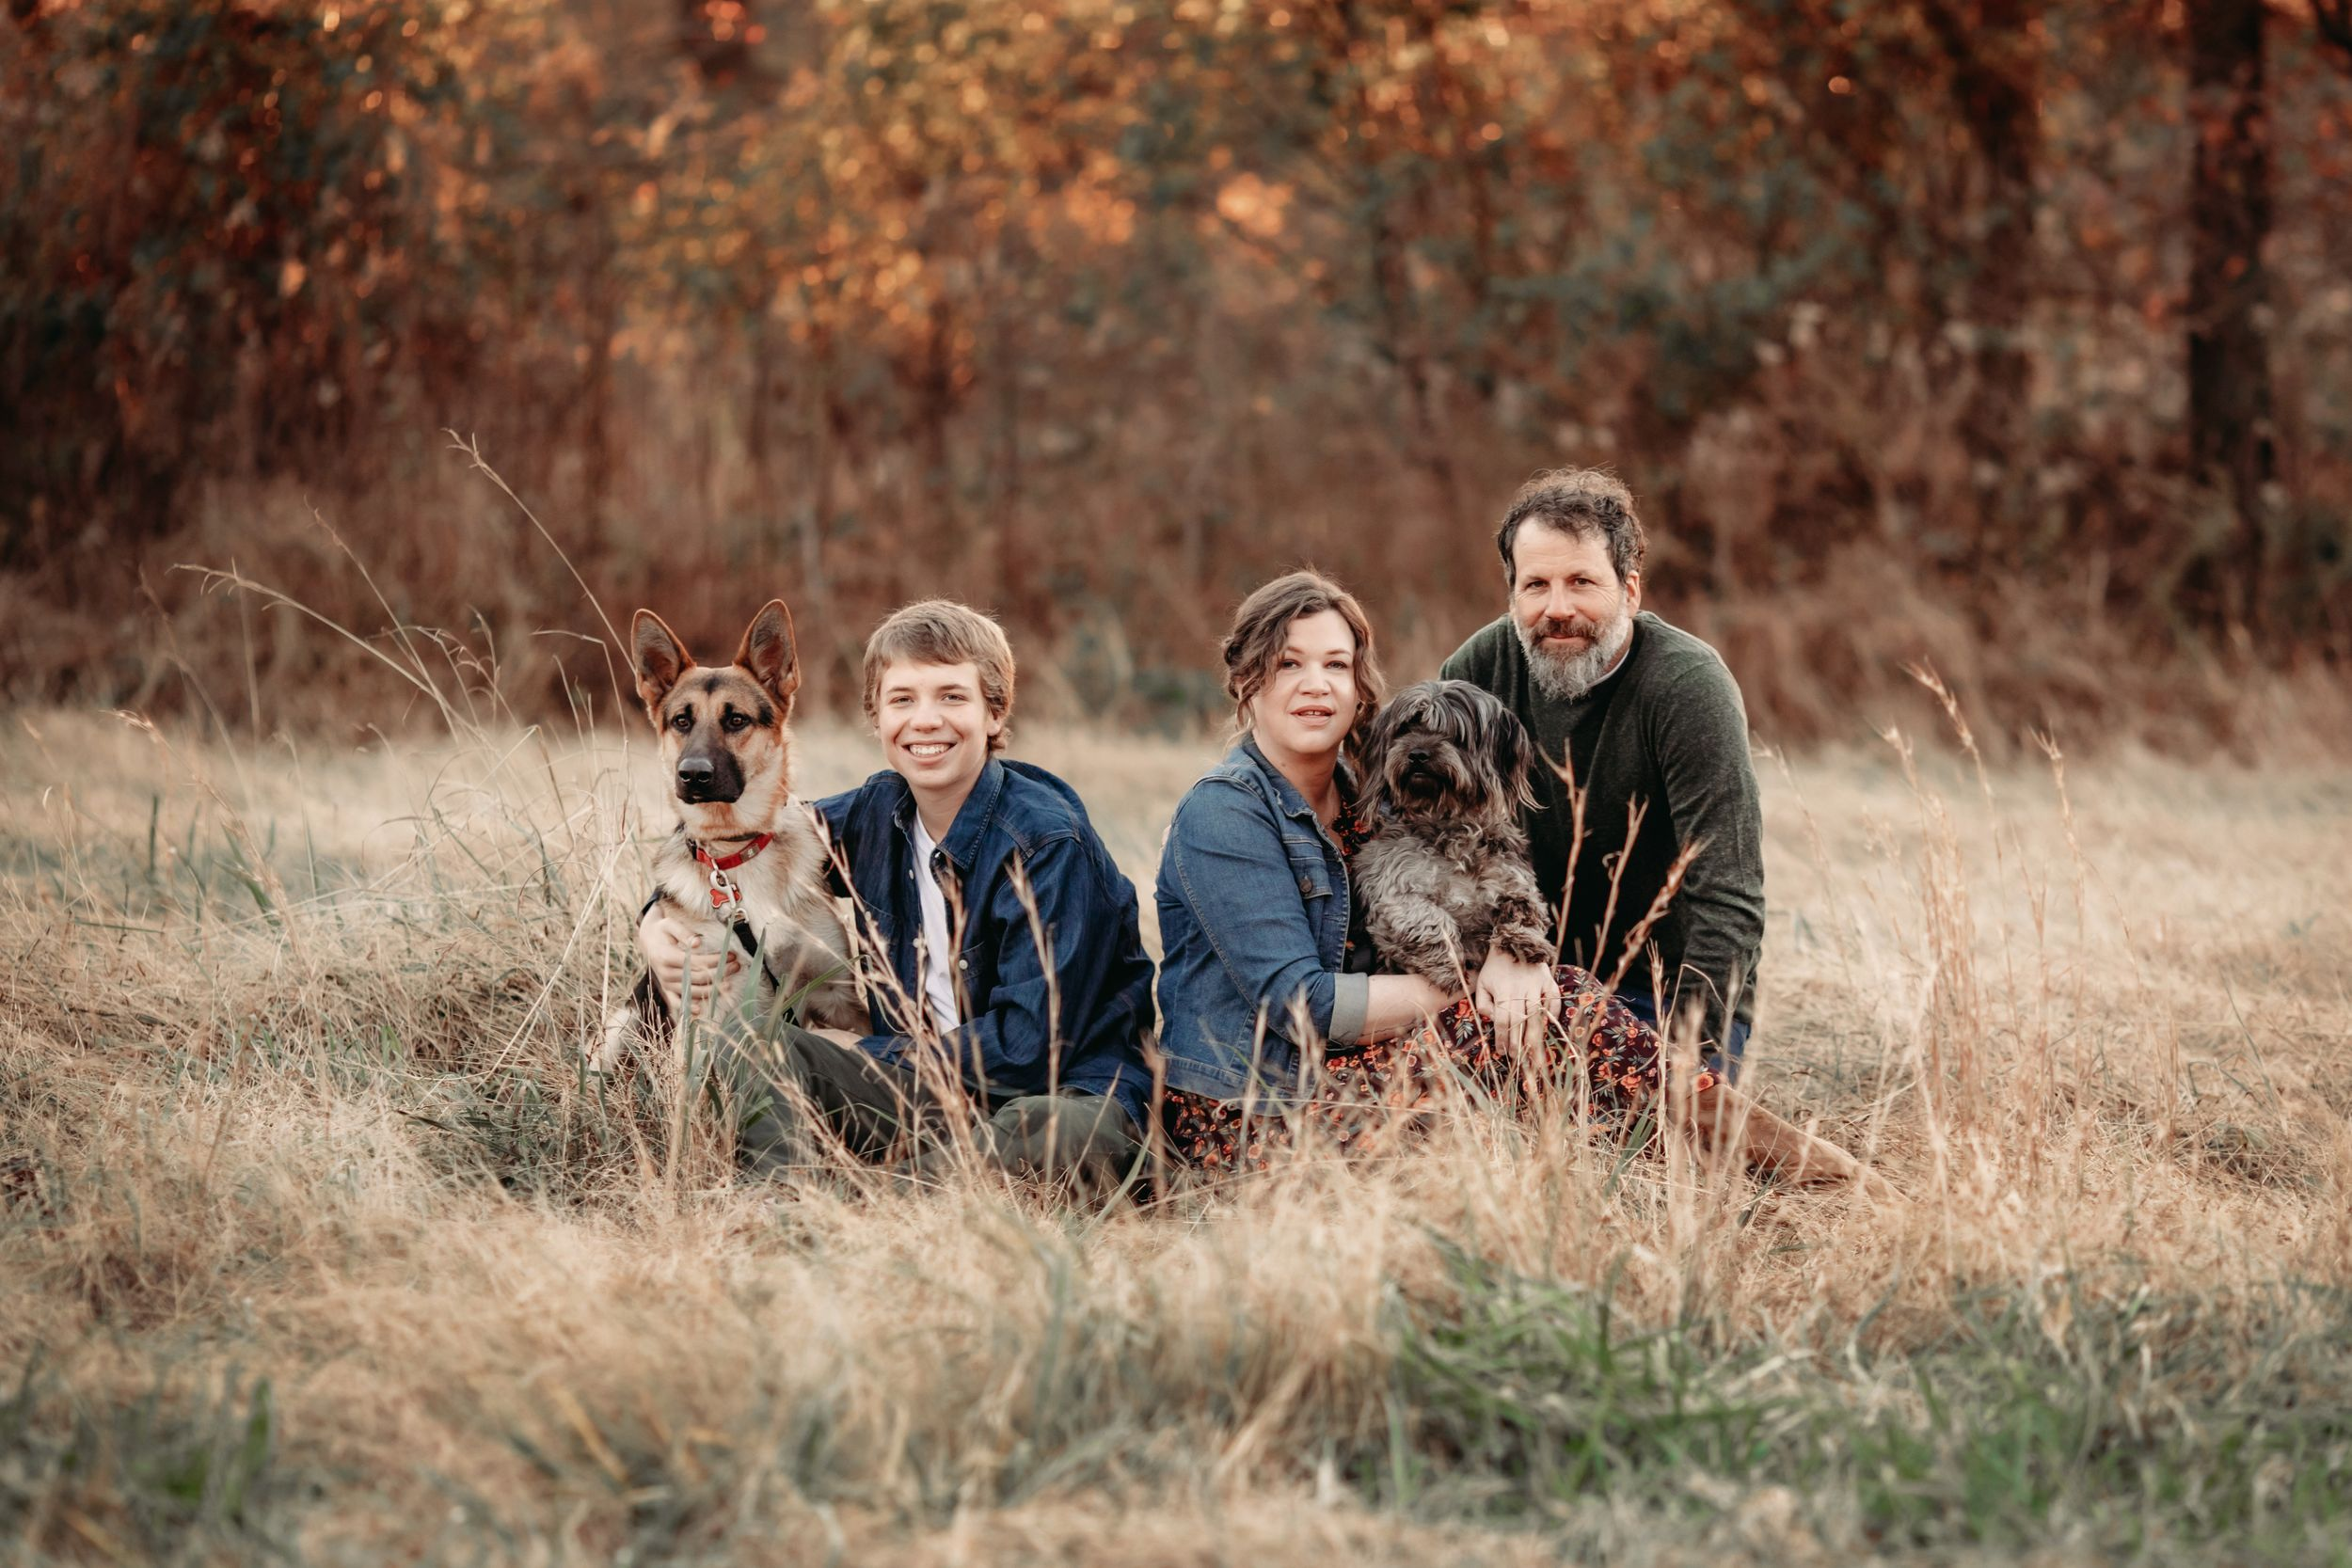 a photo of Shawn Sawyer's family and her dogs